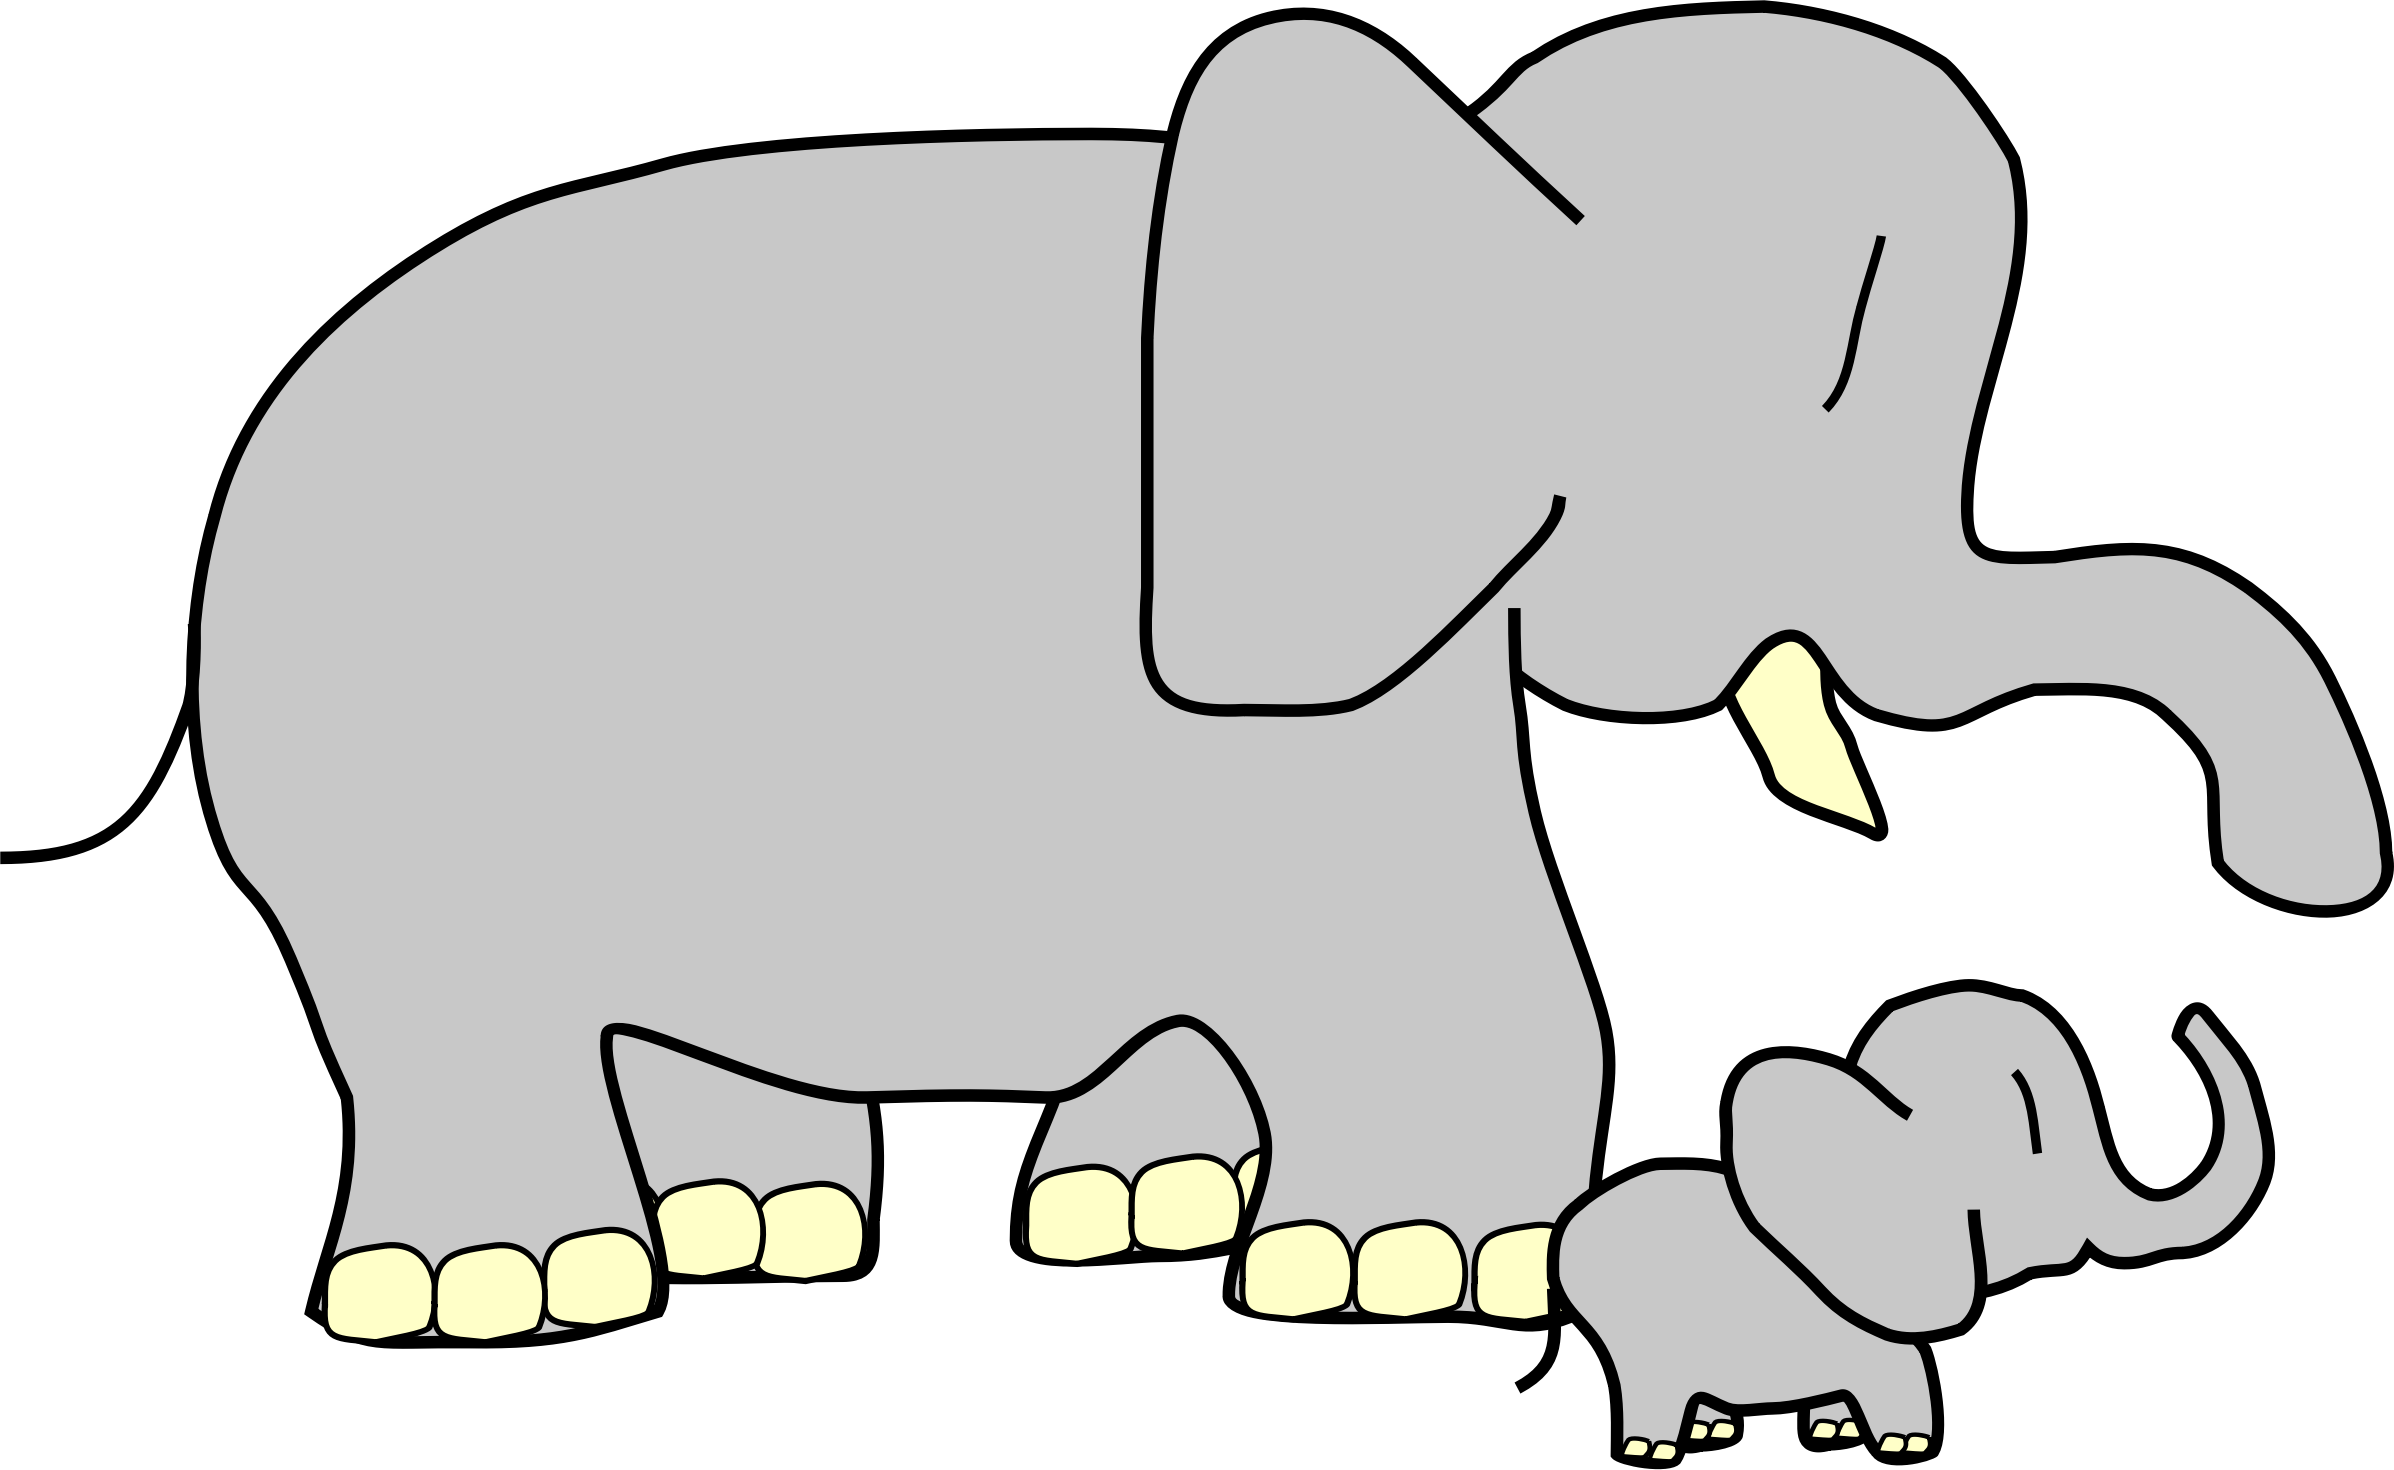 Elephants clipart dog. Who is in your